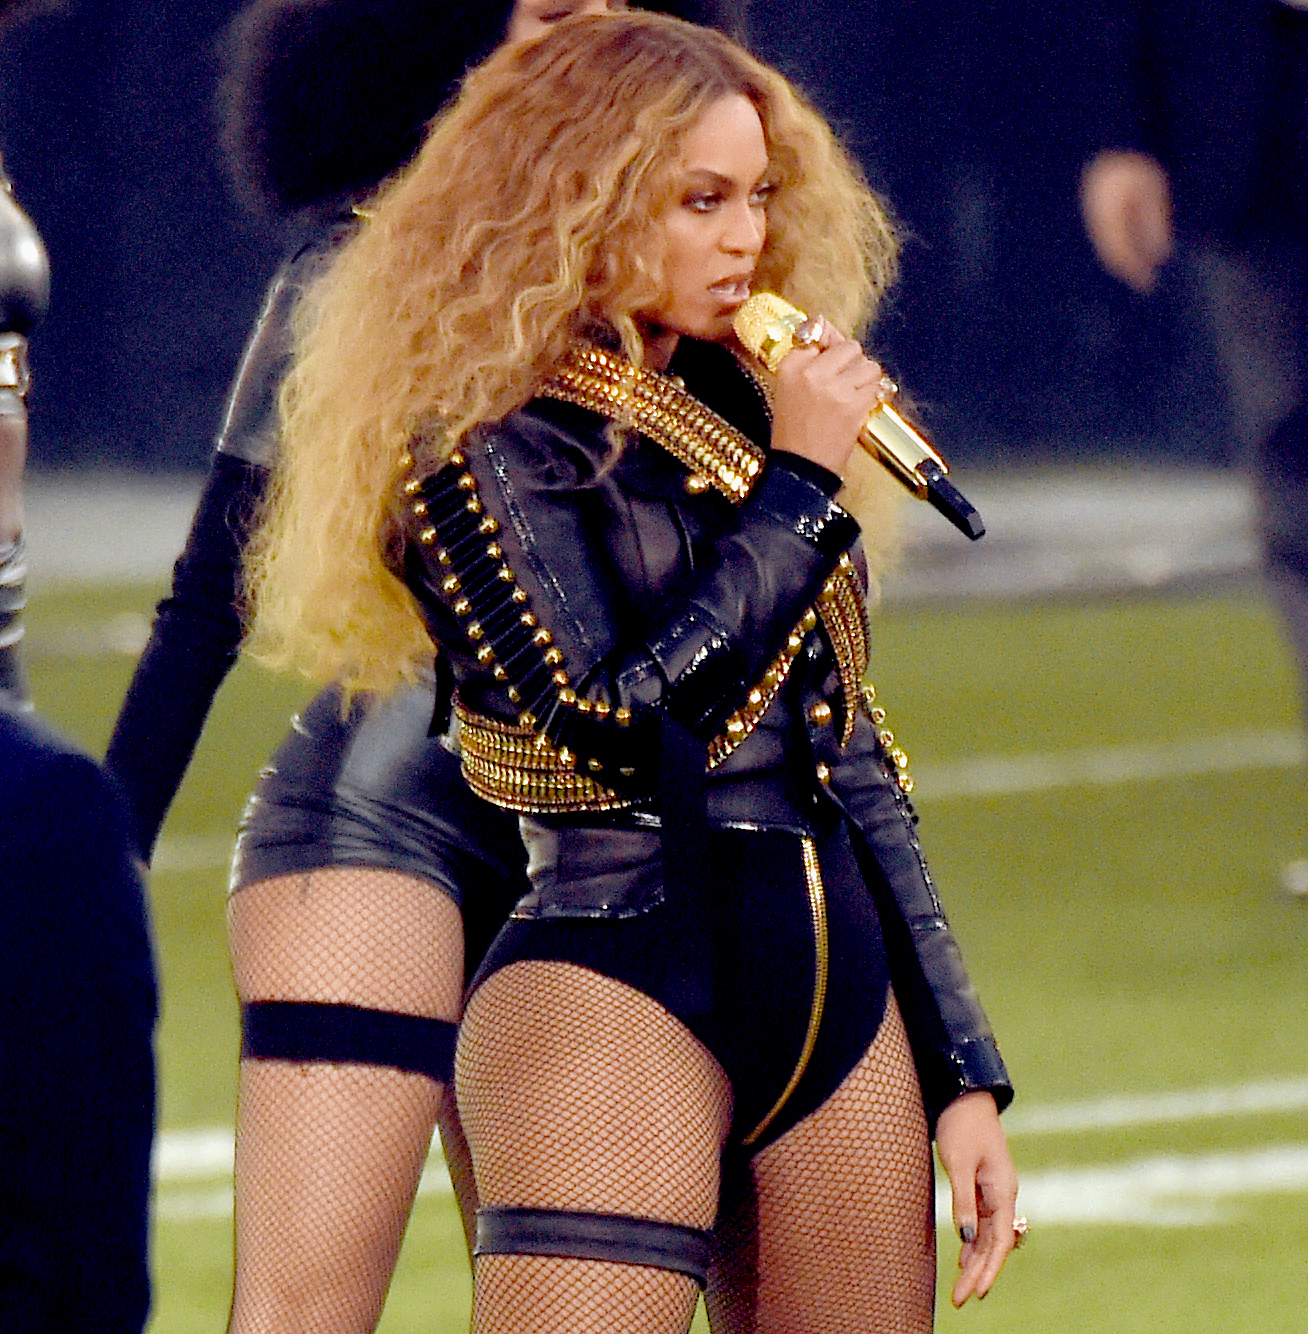 Beyonce performs onstage during the Pepsi Super Bowl 50 Halftime Show.